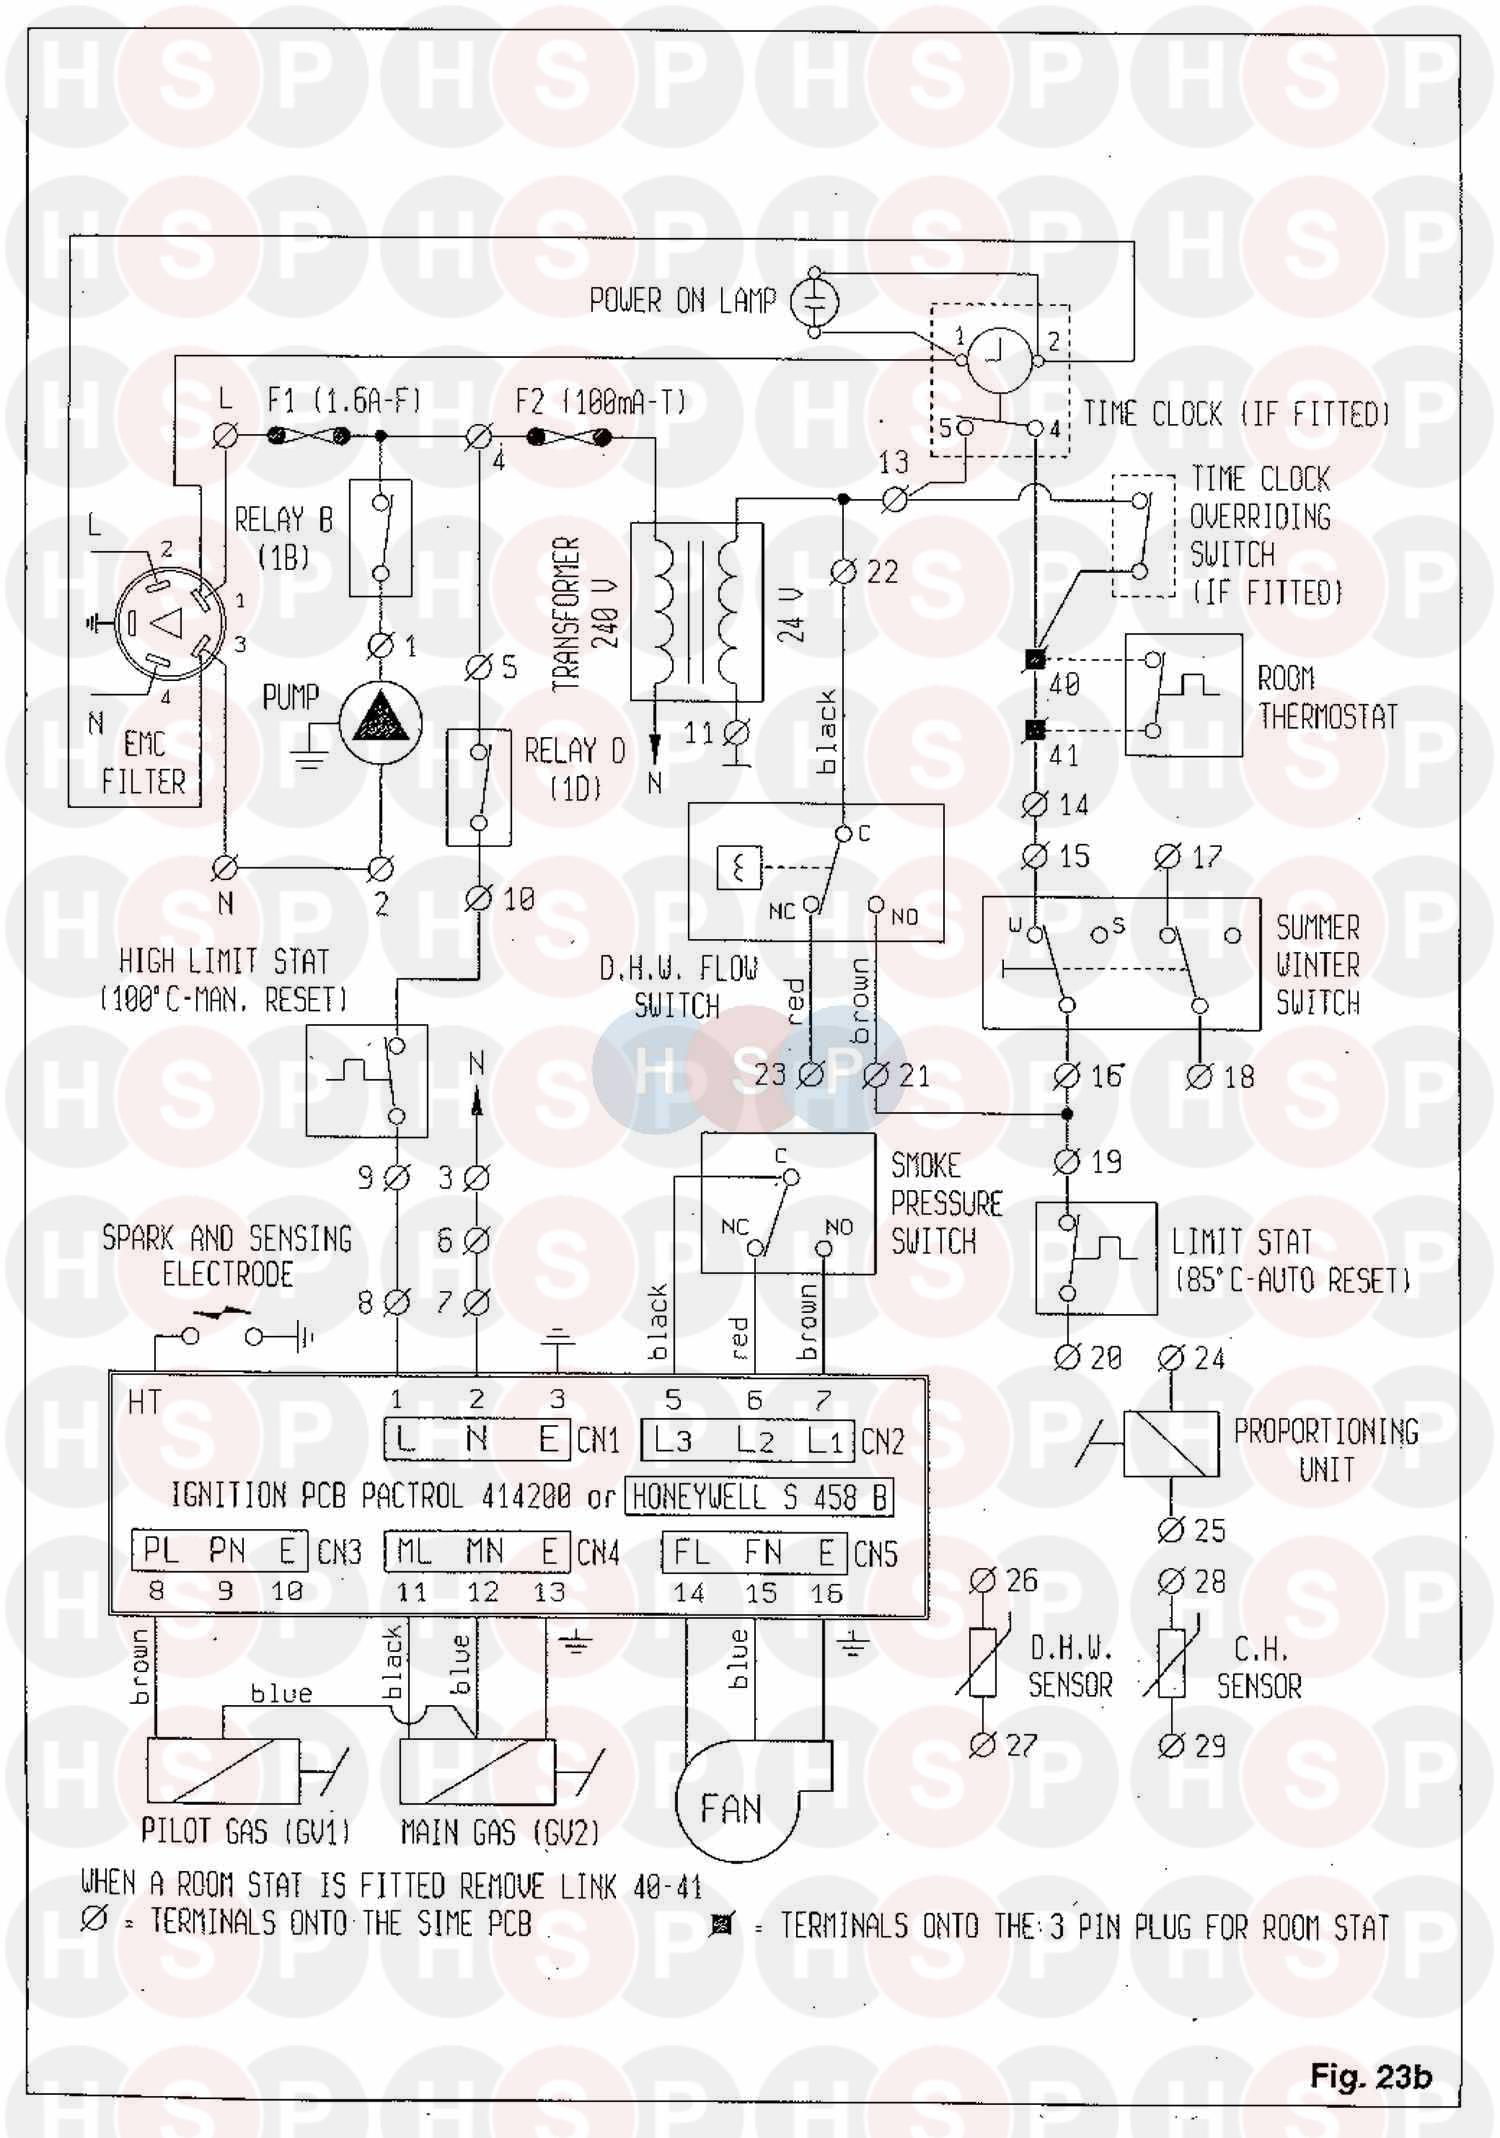 sime friendly e boiler diagram wiring 2 heating spare parts rh heatingspareparts com Boiler Control Wiring Gas Boiler Wiring